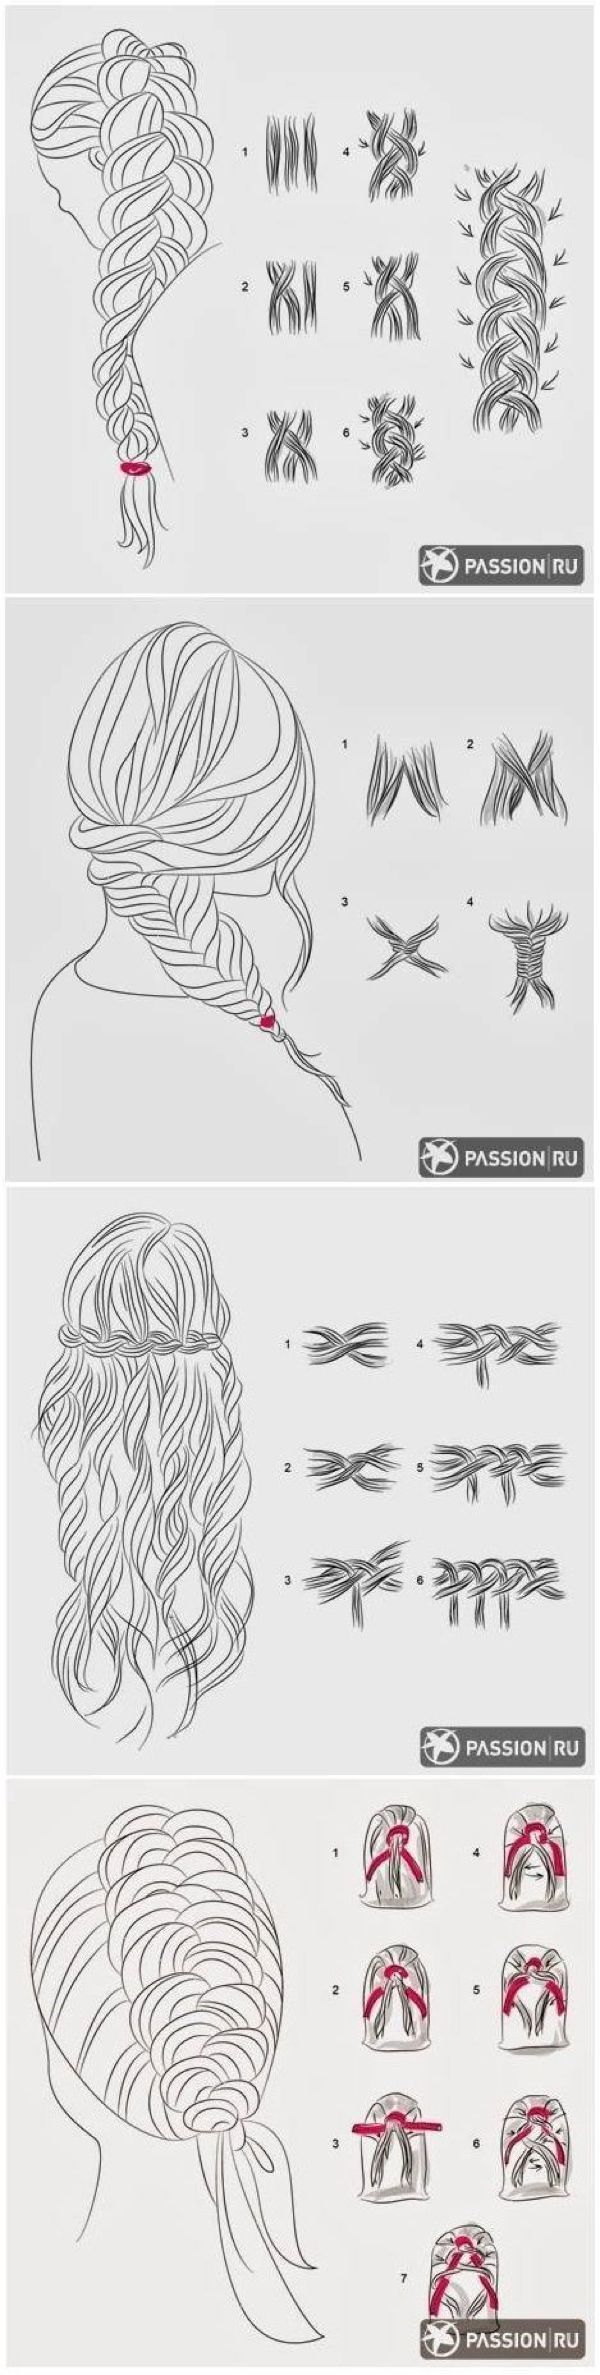 awesome Hairstyle Ideas // All about Braids , All about braids ... just to show to yourhairstylist... because some braids are best left to the pros.  My hairdresser loves doing braids and we h... ,